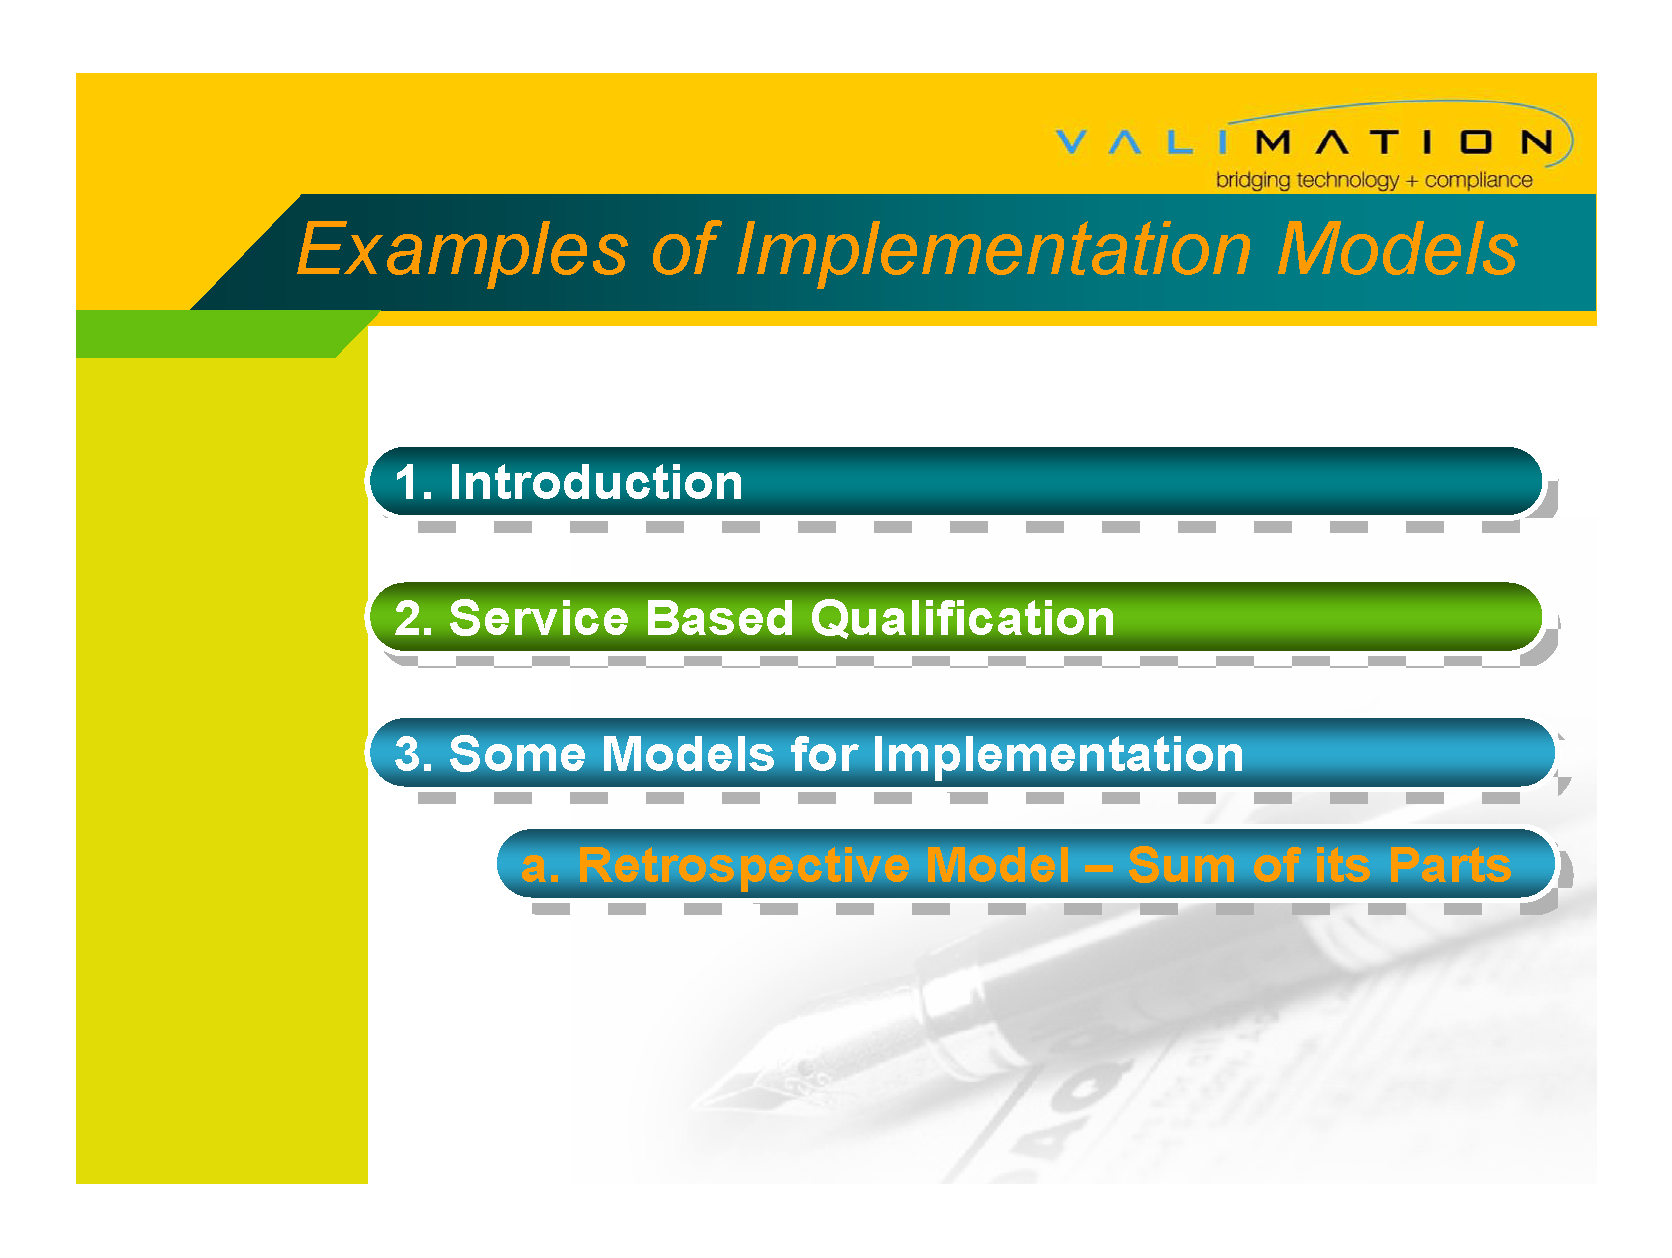 Network Qualification - Accretive Model By ValiMation_Page_18.png